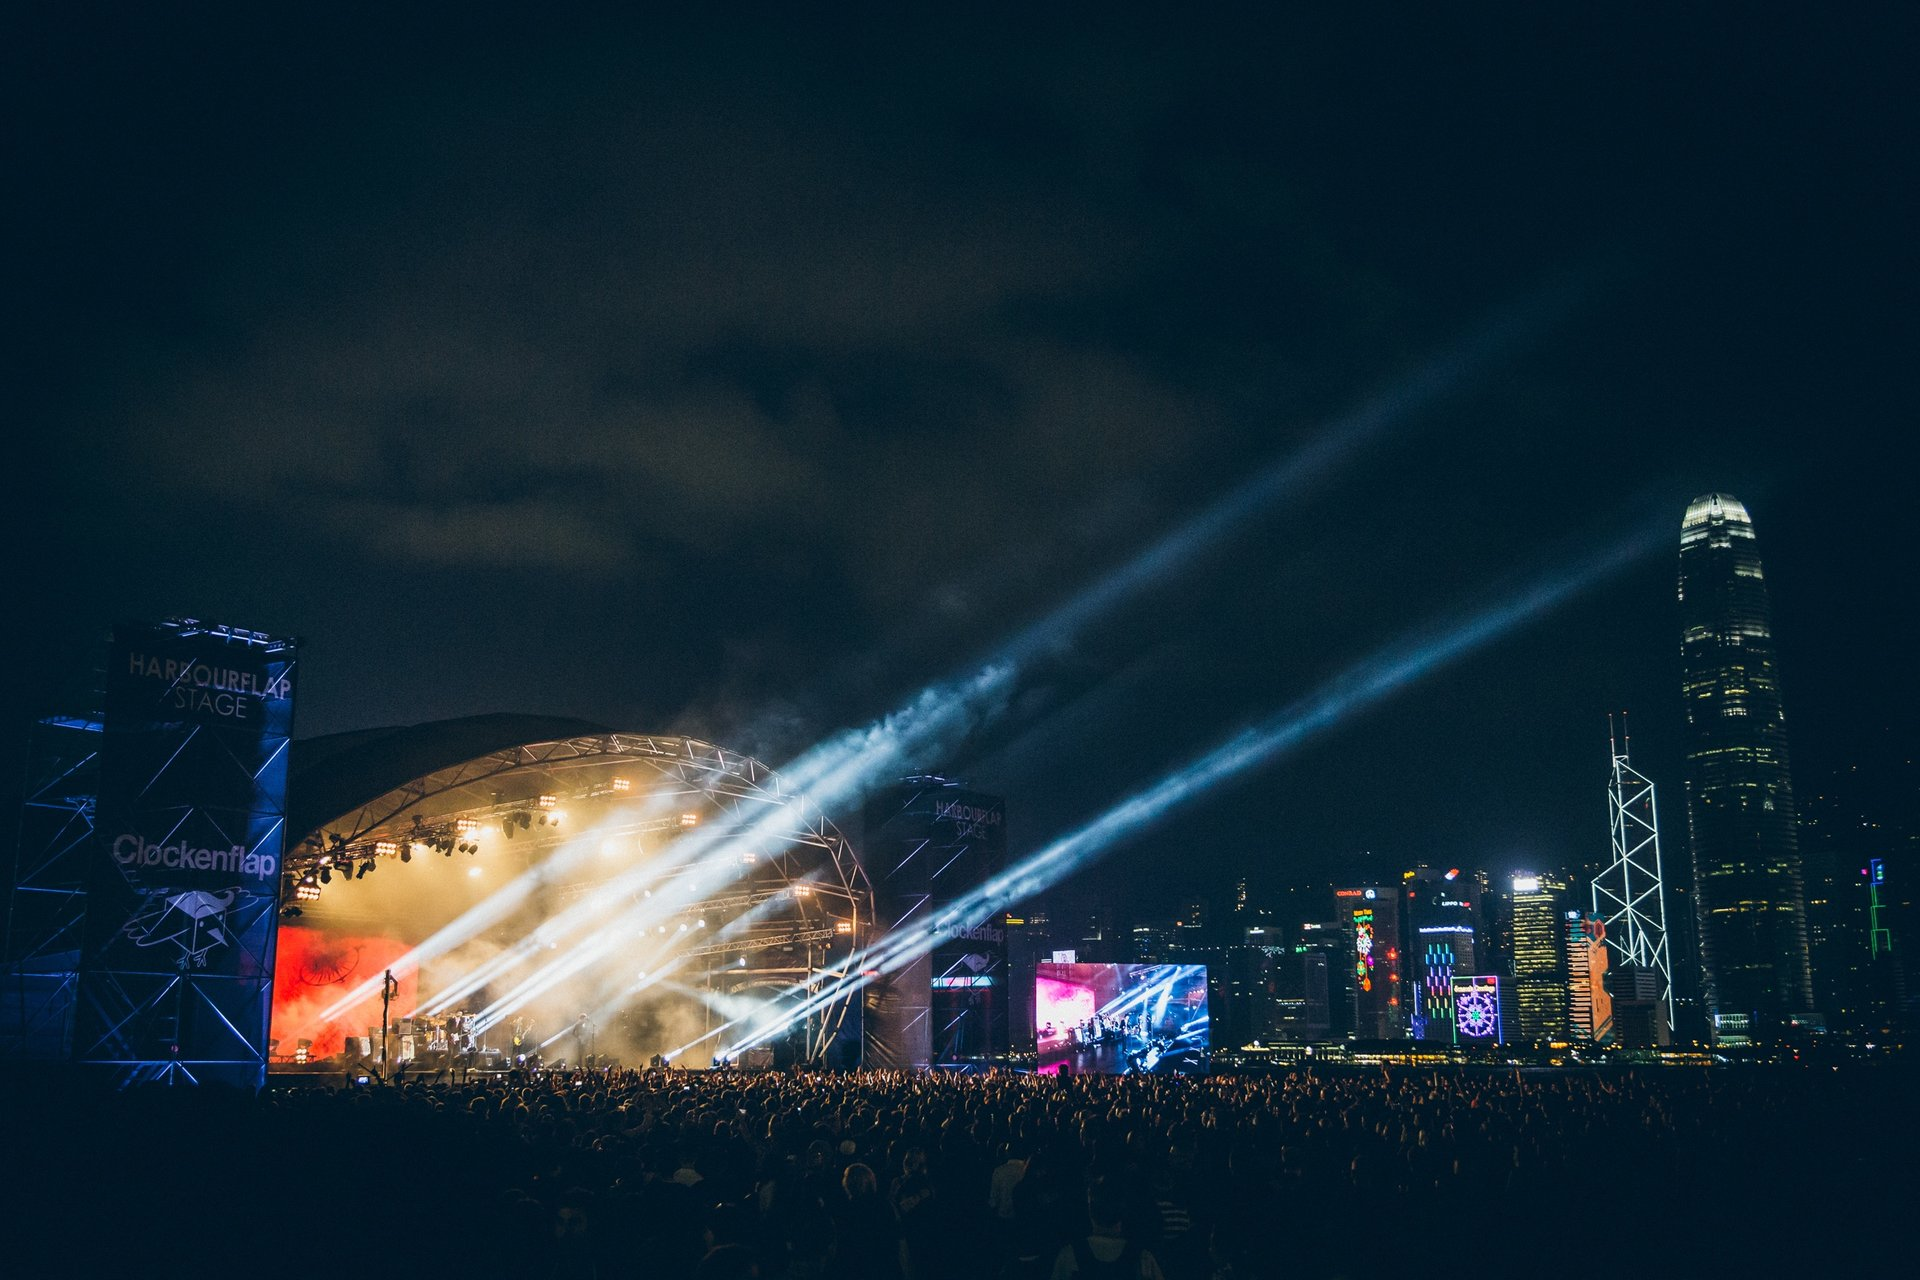 Clockenflap in Hong Kong - Best Season